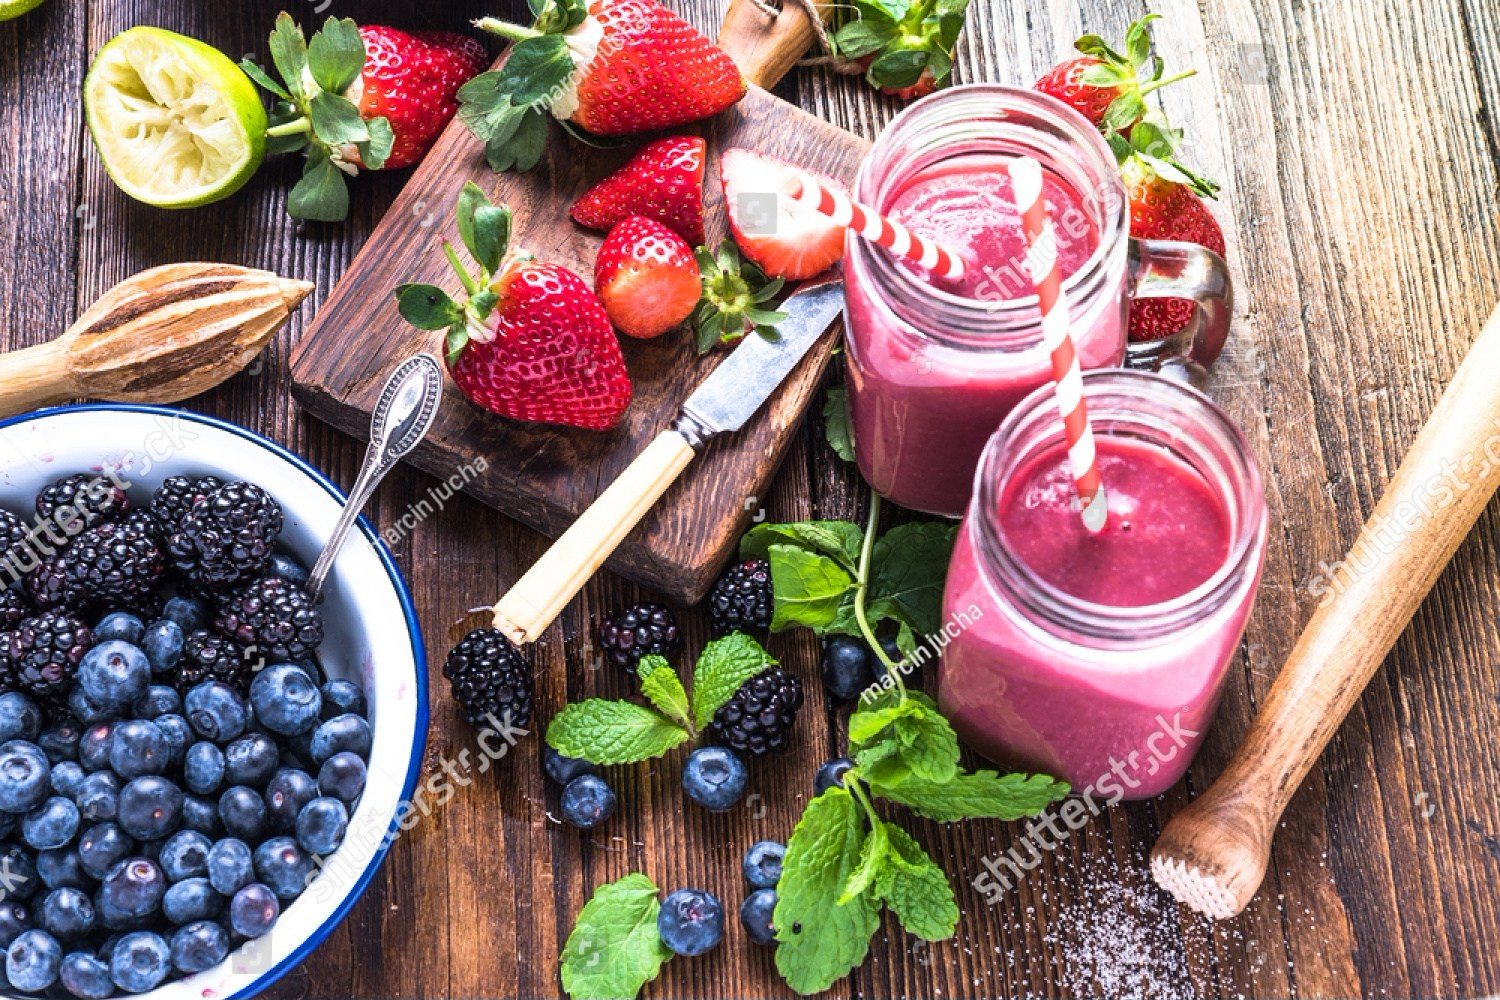 stock-photo-preparation-of-antioxidant-and-refreshing-smoothie-well-being-and-weight-loos-concept-on-wooden-379858843-e1518115625106.jpg